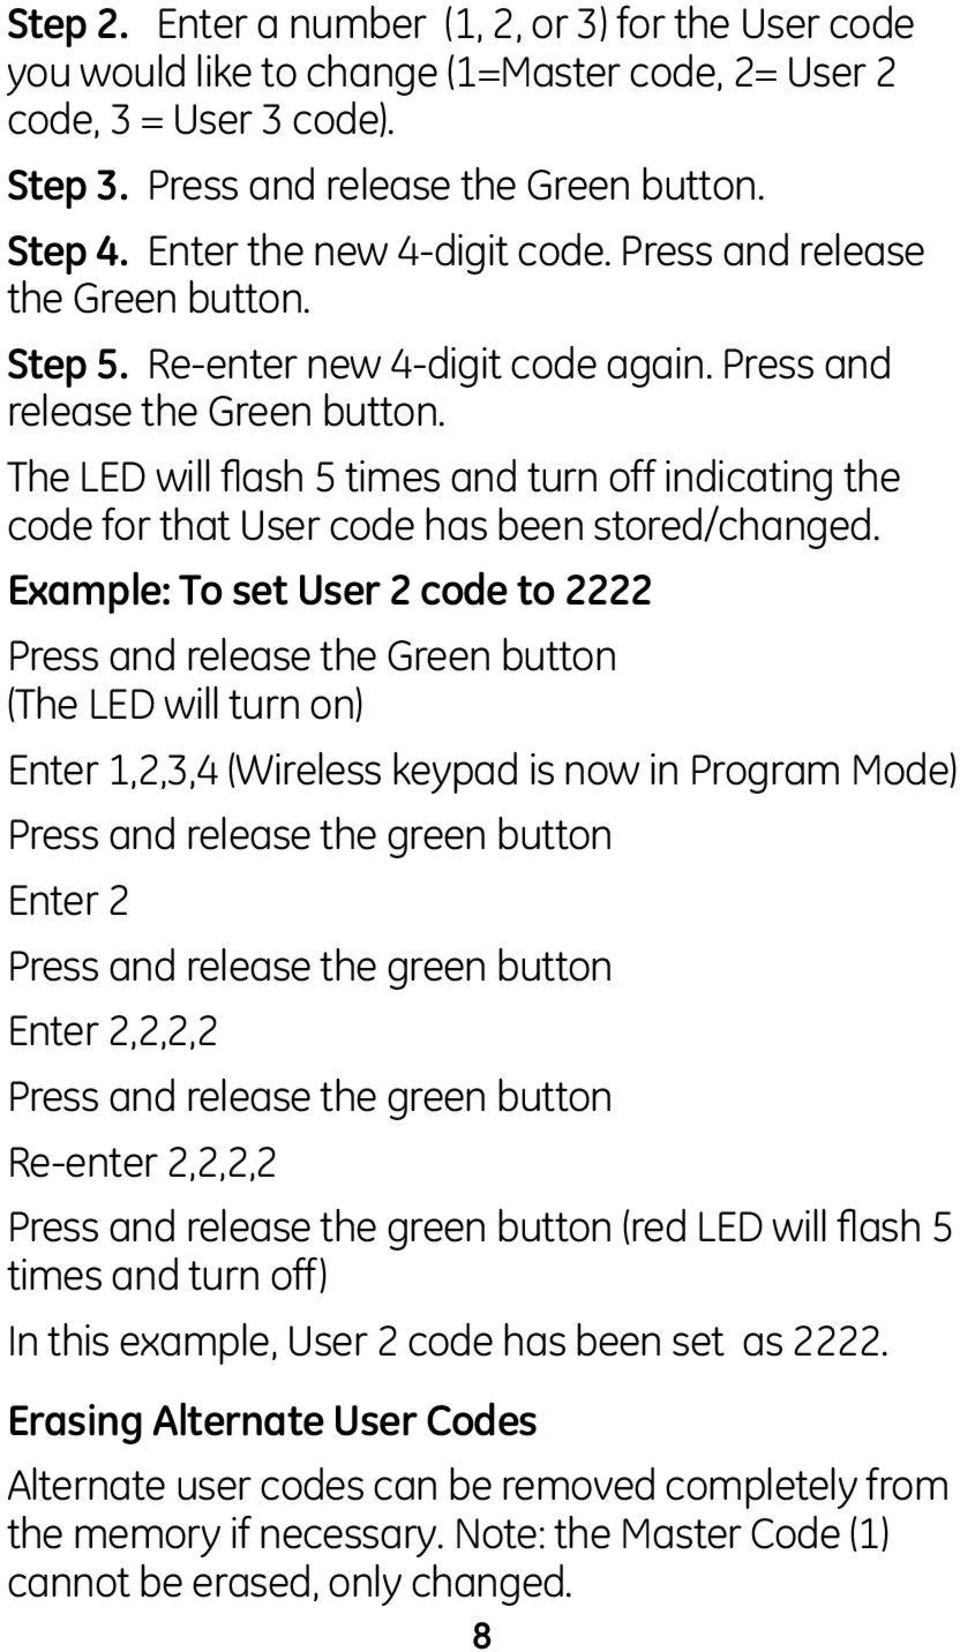 Example: To set User 2 code to 2222 Press and release the Green button (The LED will turn on) Enter 1,2,3,4 (Wireless keypad is now in Program Mode) Press and release the green button Enter 2 Press